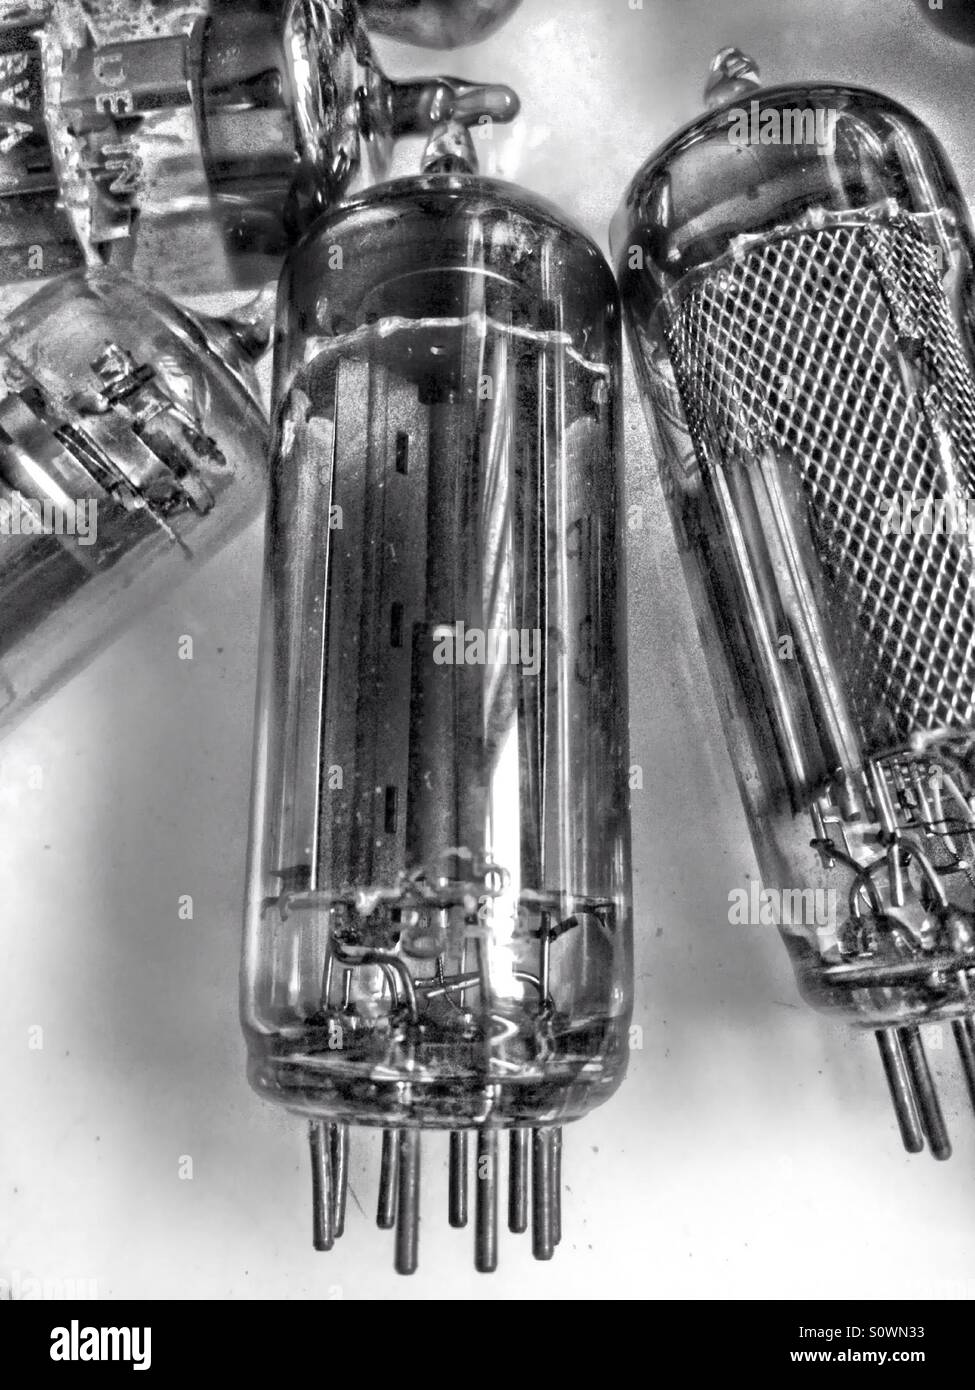 Vintage radio and television valves Stock Photo: 310351975 - Alamy